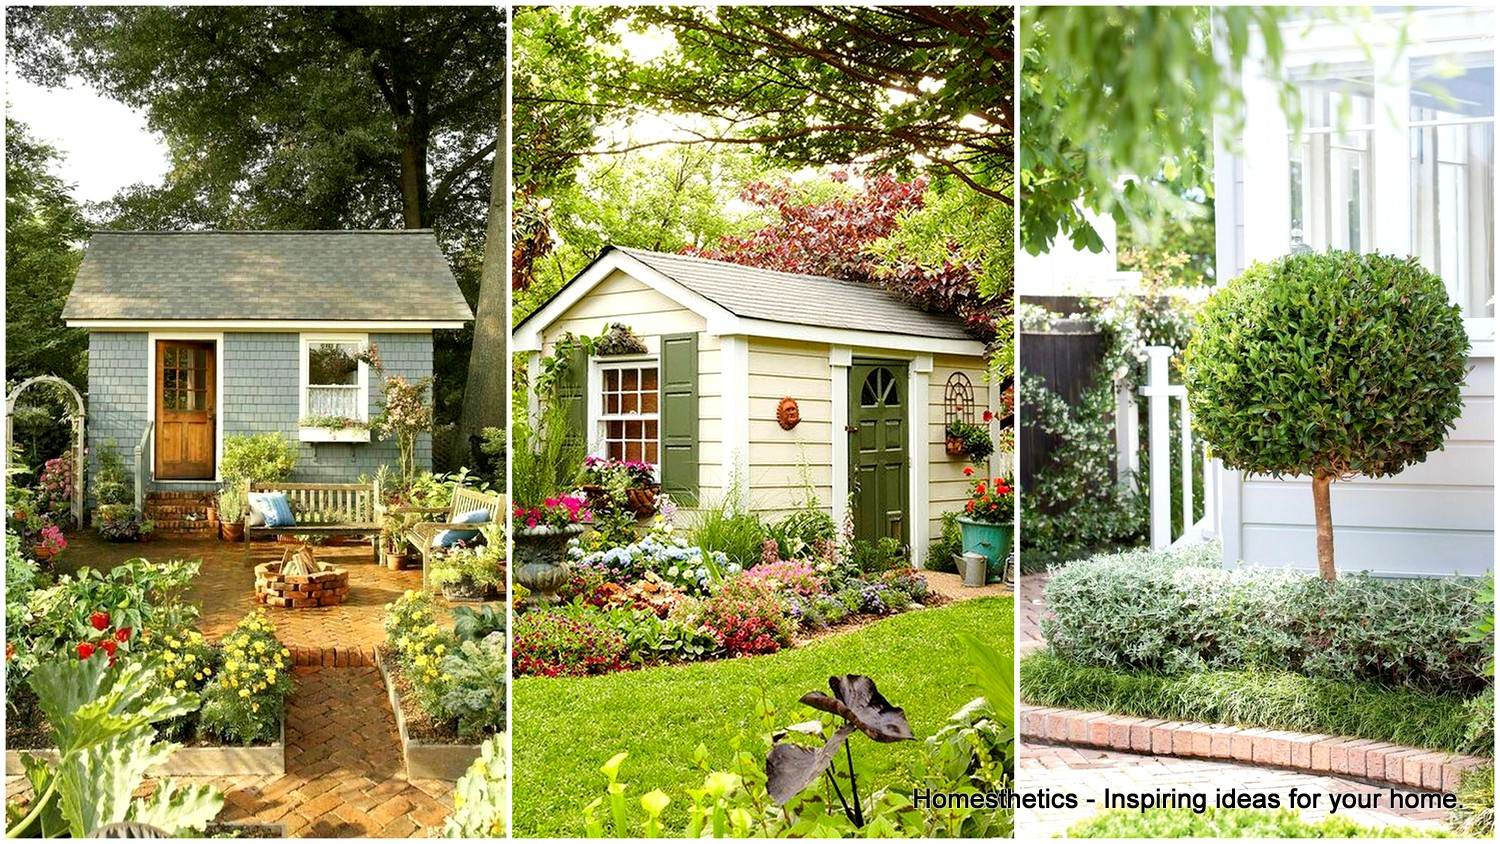 What Is A Shed   Sheds Defined, Structure Types, Pros And Cons - Diyvila